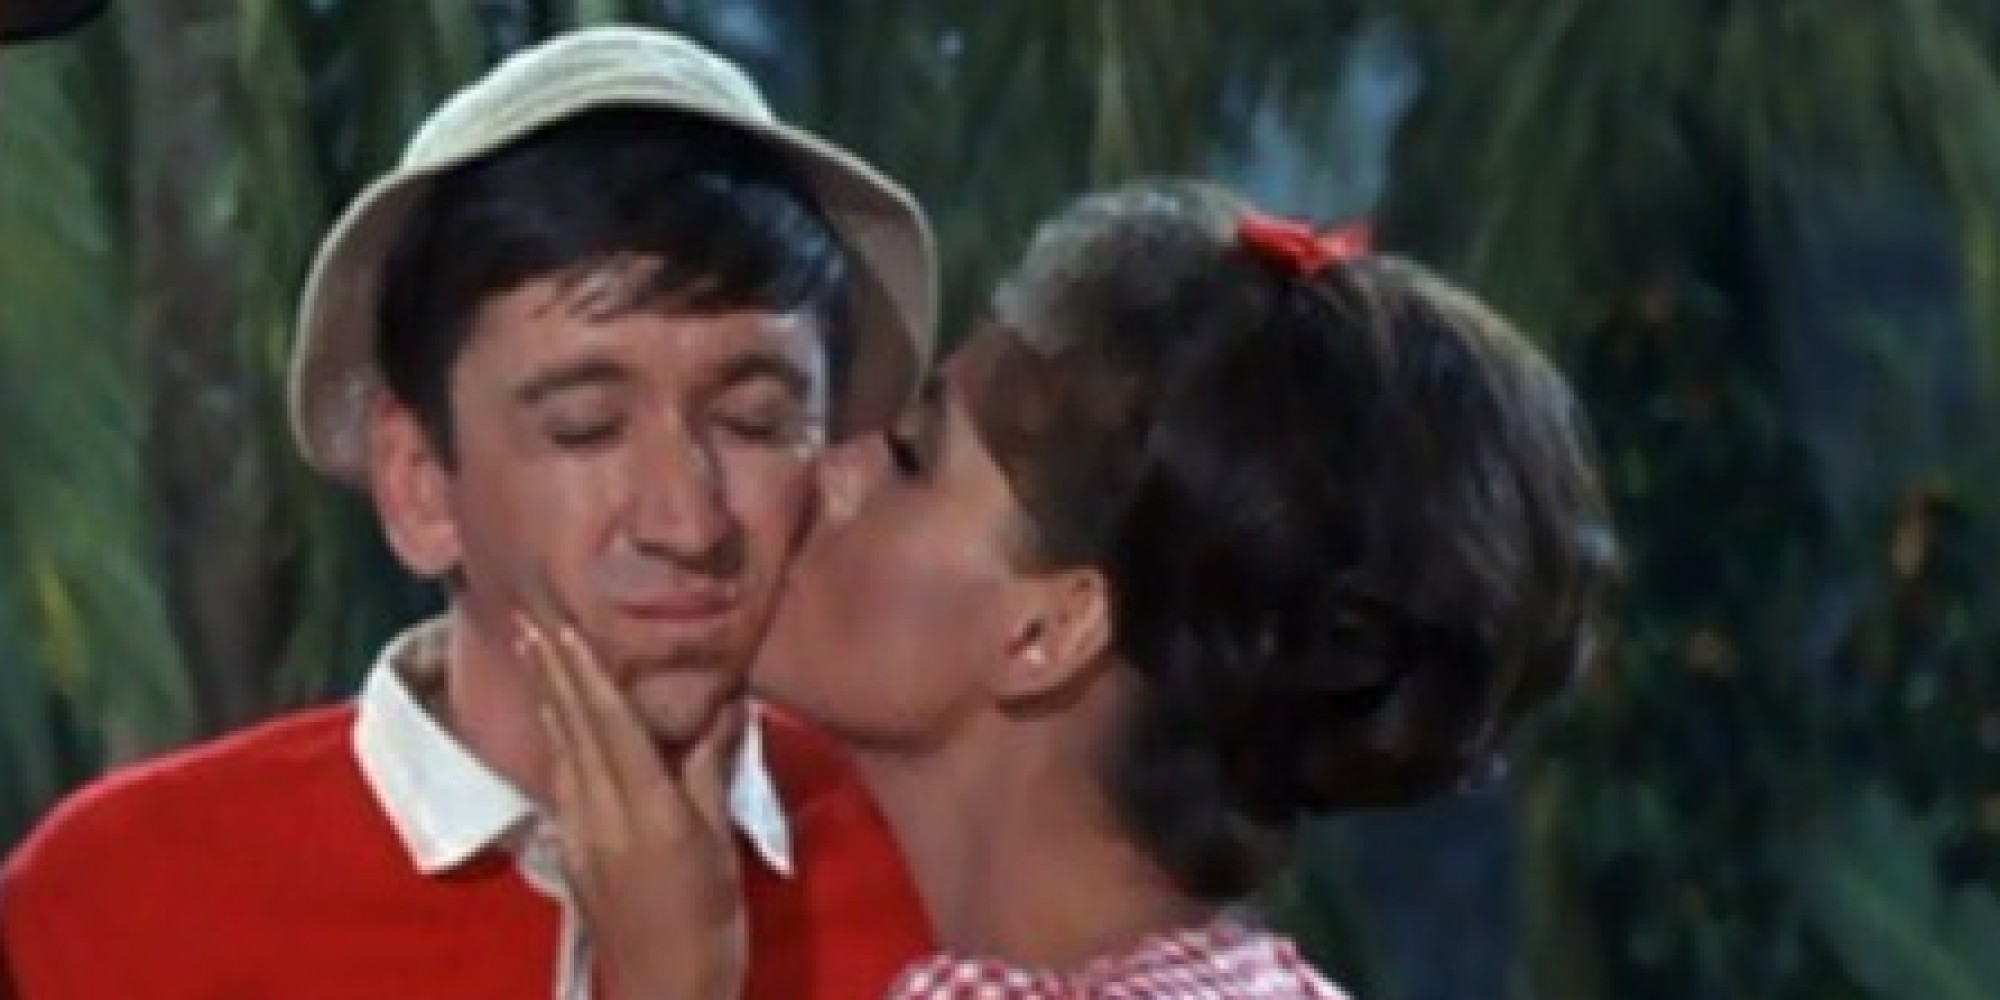 Things you didn t know about gilligan s island according to mary